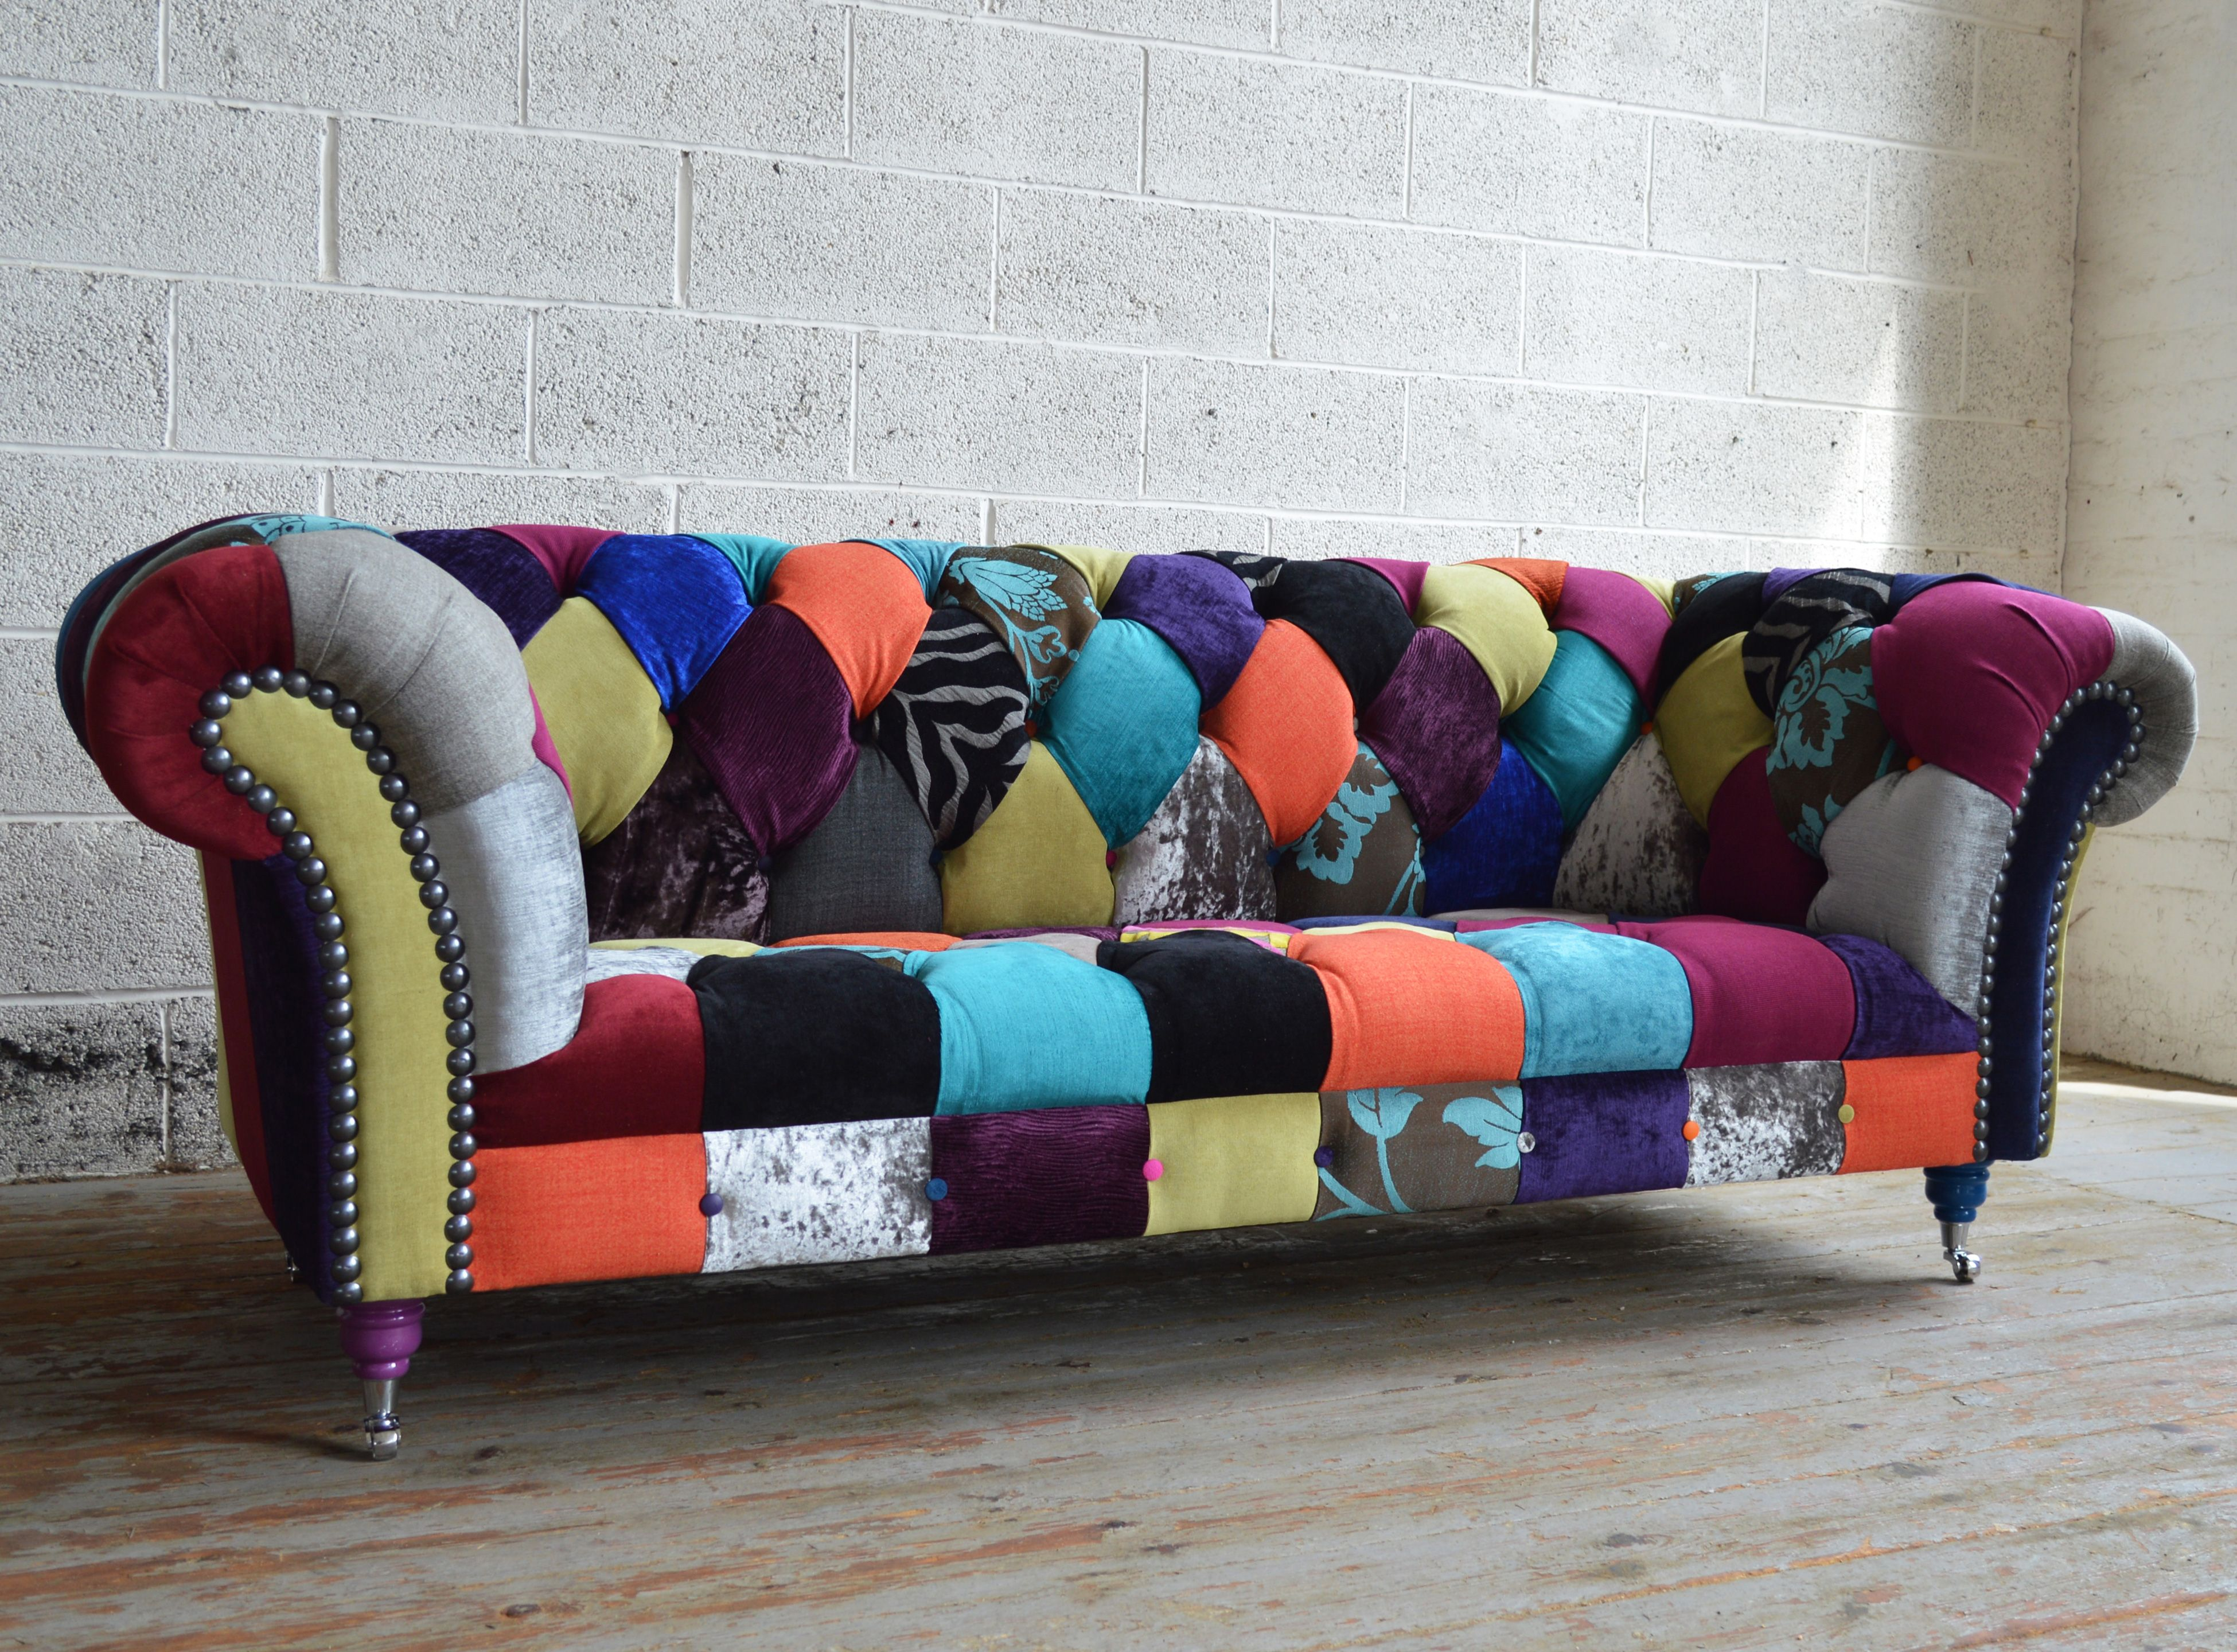 Walton Multi Patchwork Chesterfield Sofa Jpg 3900 2880 Crafty Harlequin Coloured Fabric